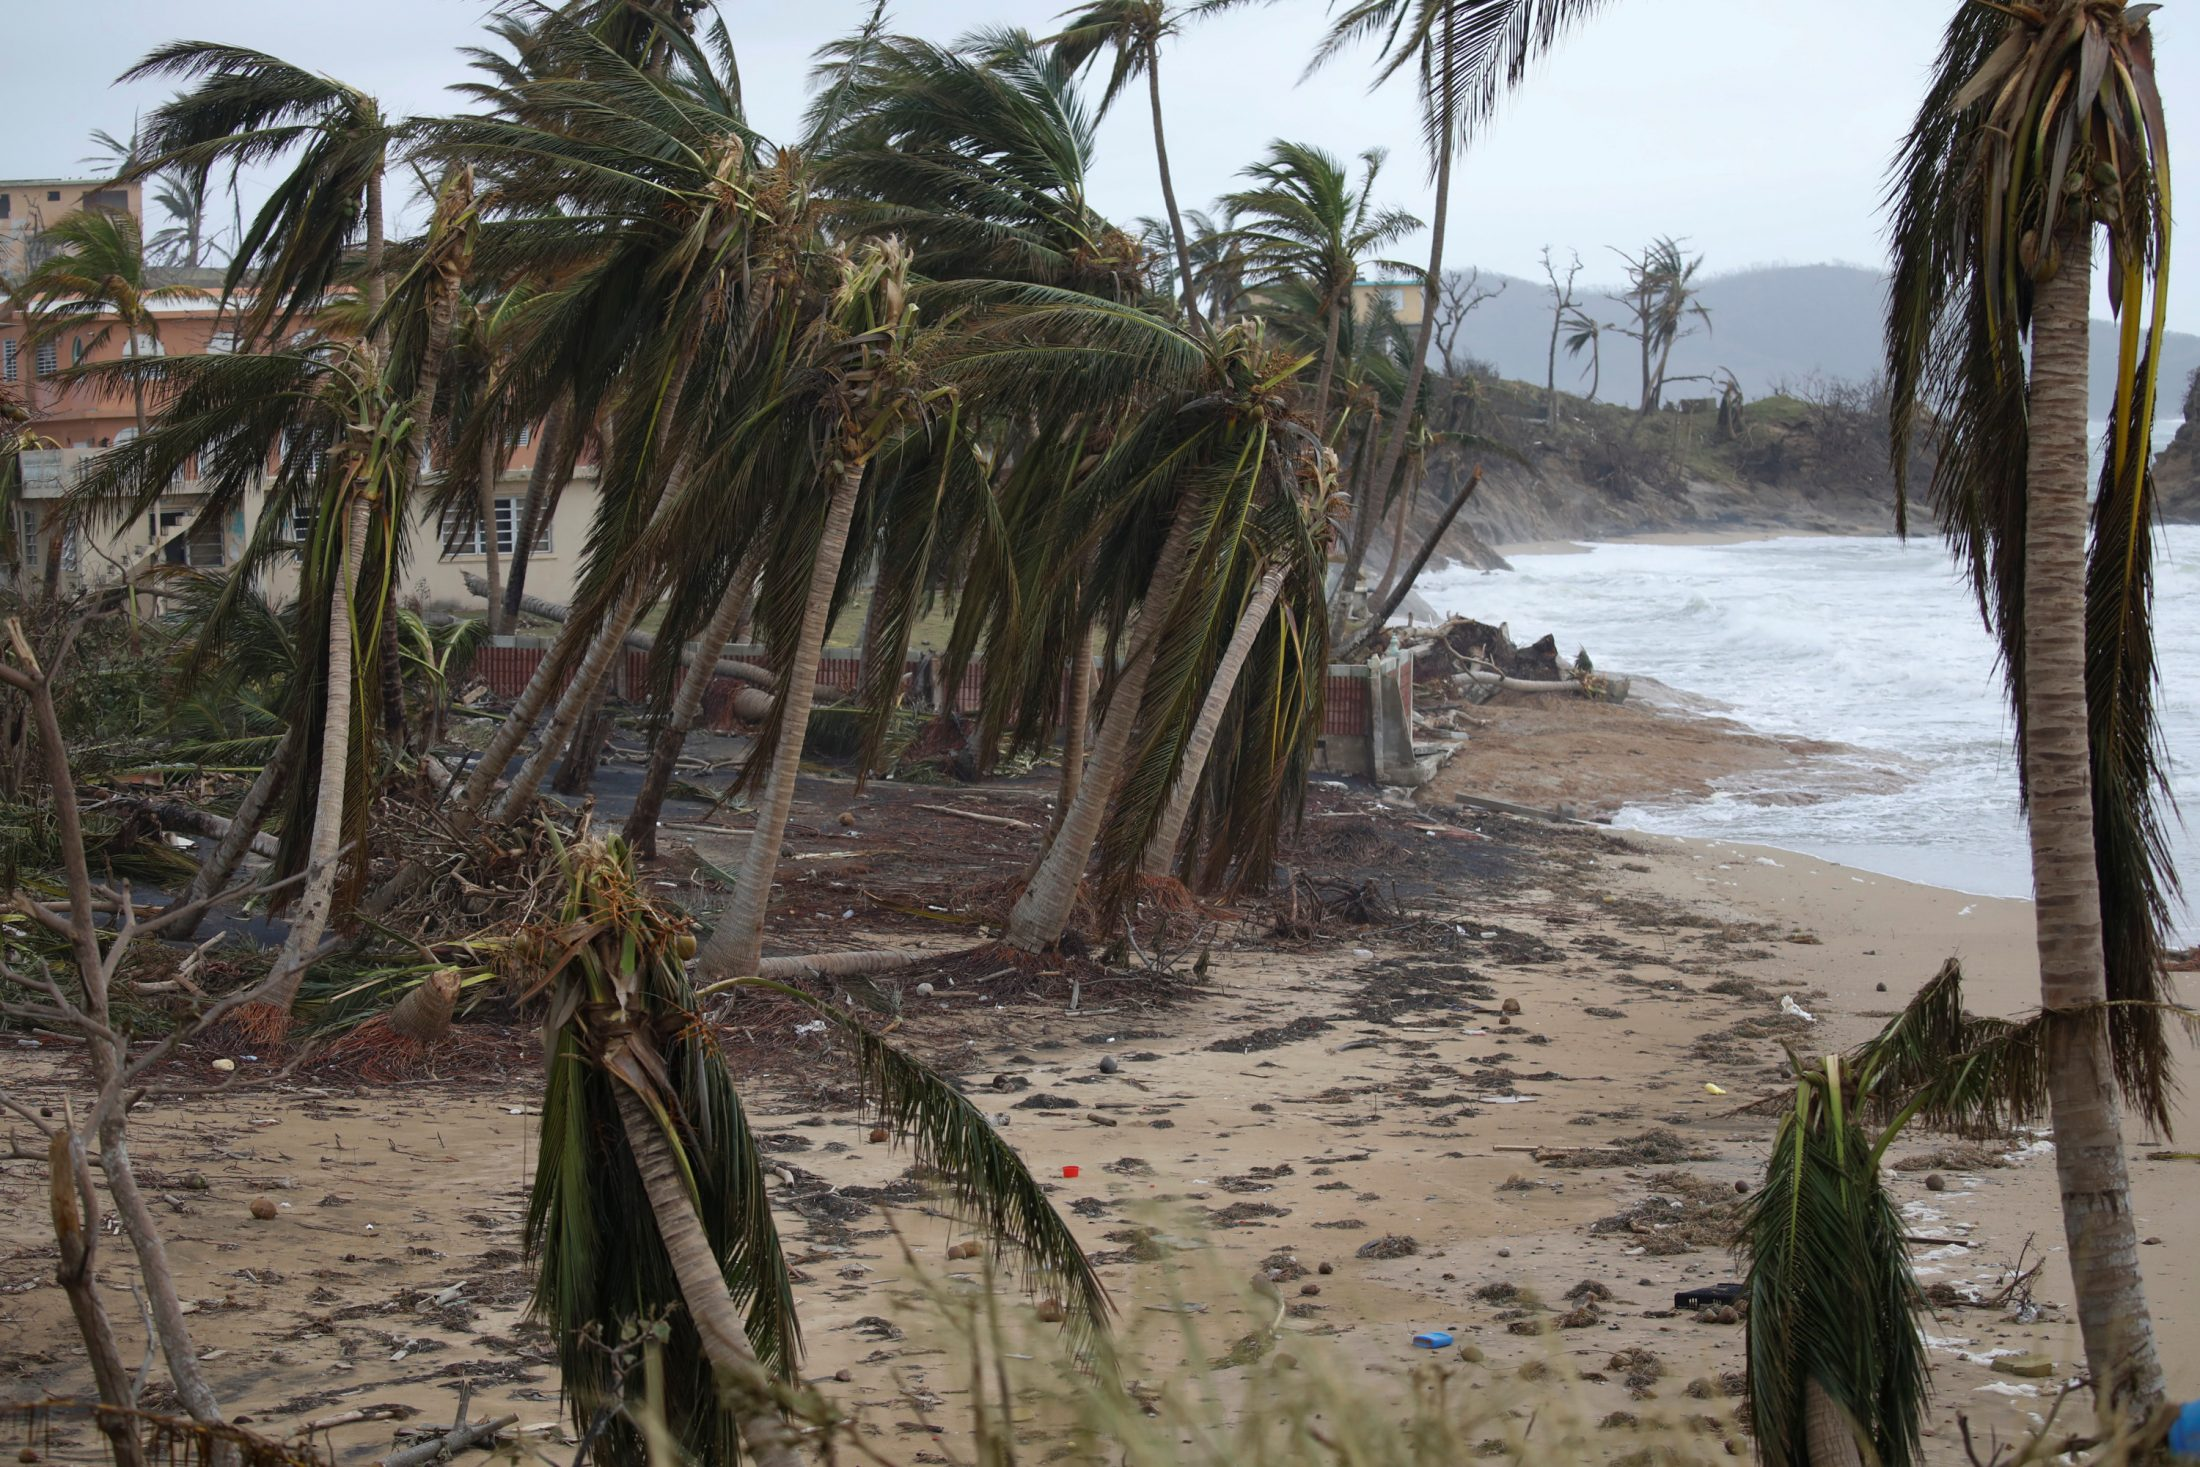 Broken palm trees are seen after the area was hit by Hurricane Maria in Yabucoa, Puerto Rico. Photo by Carlos Garcia Rawlins/Reuters